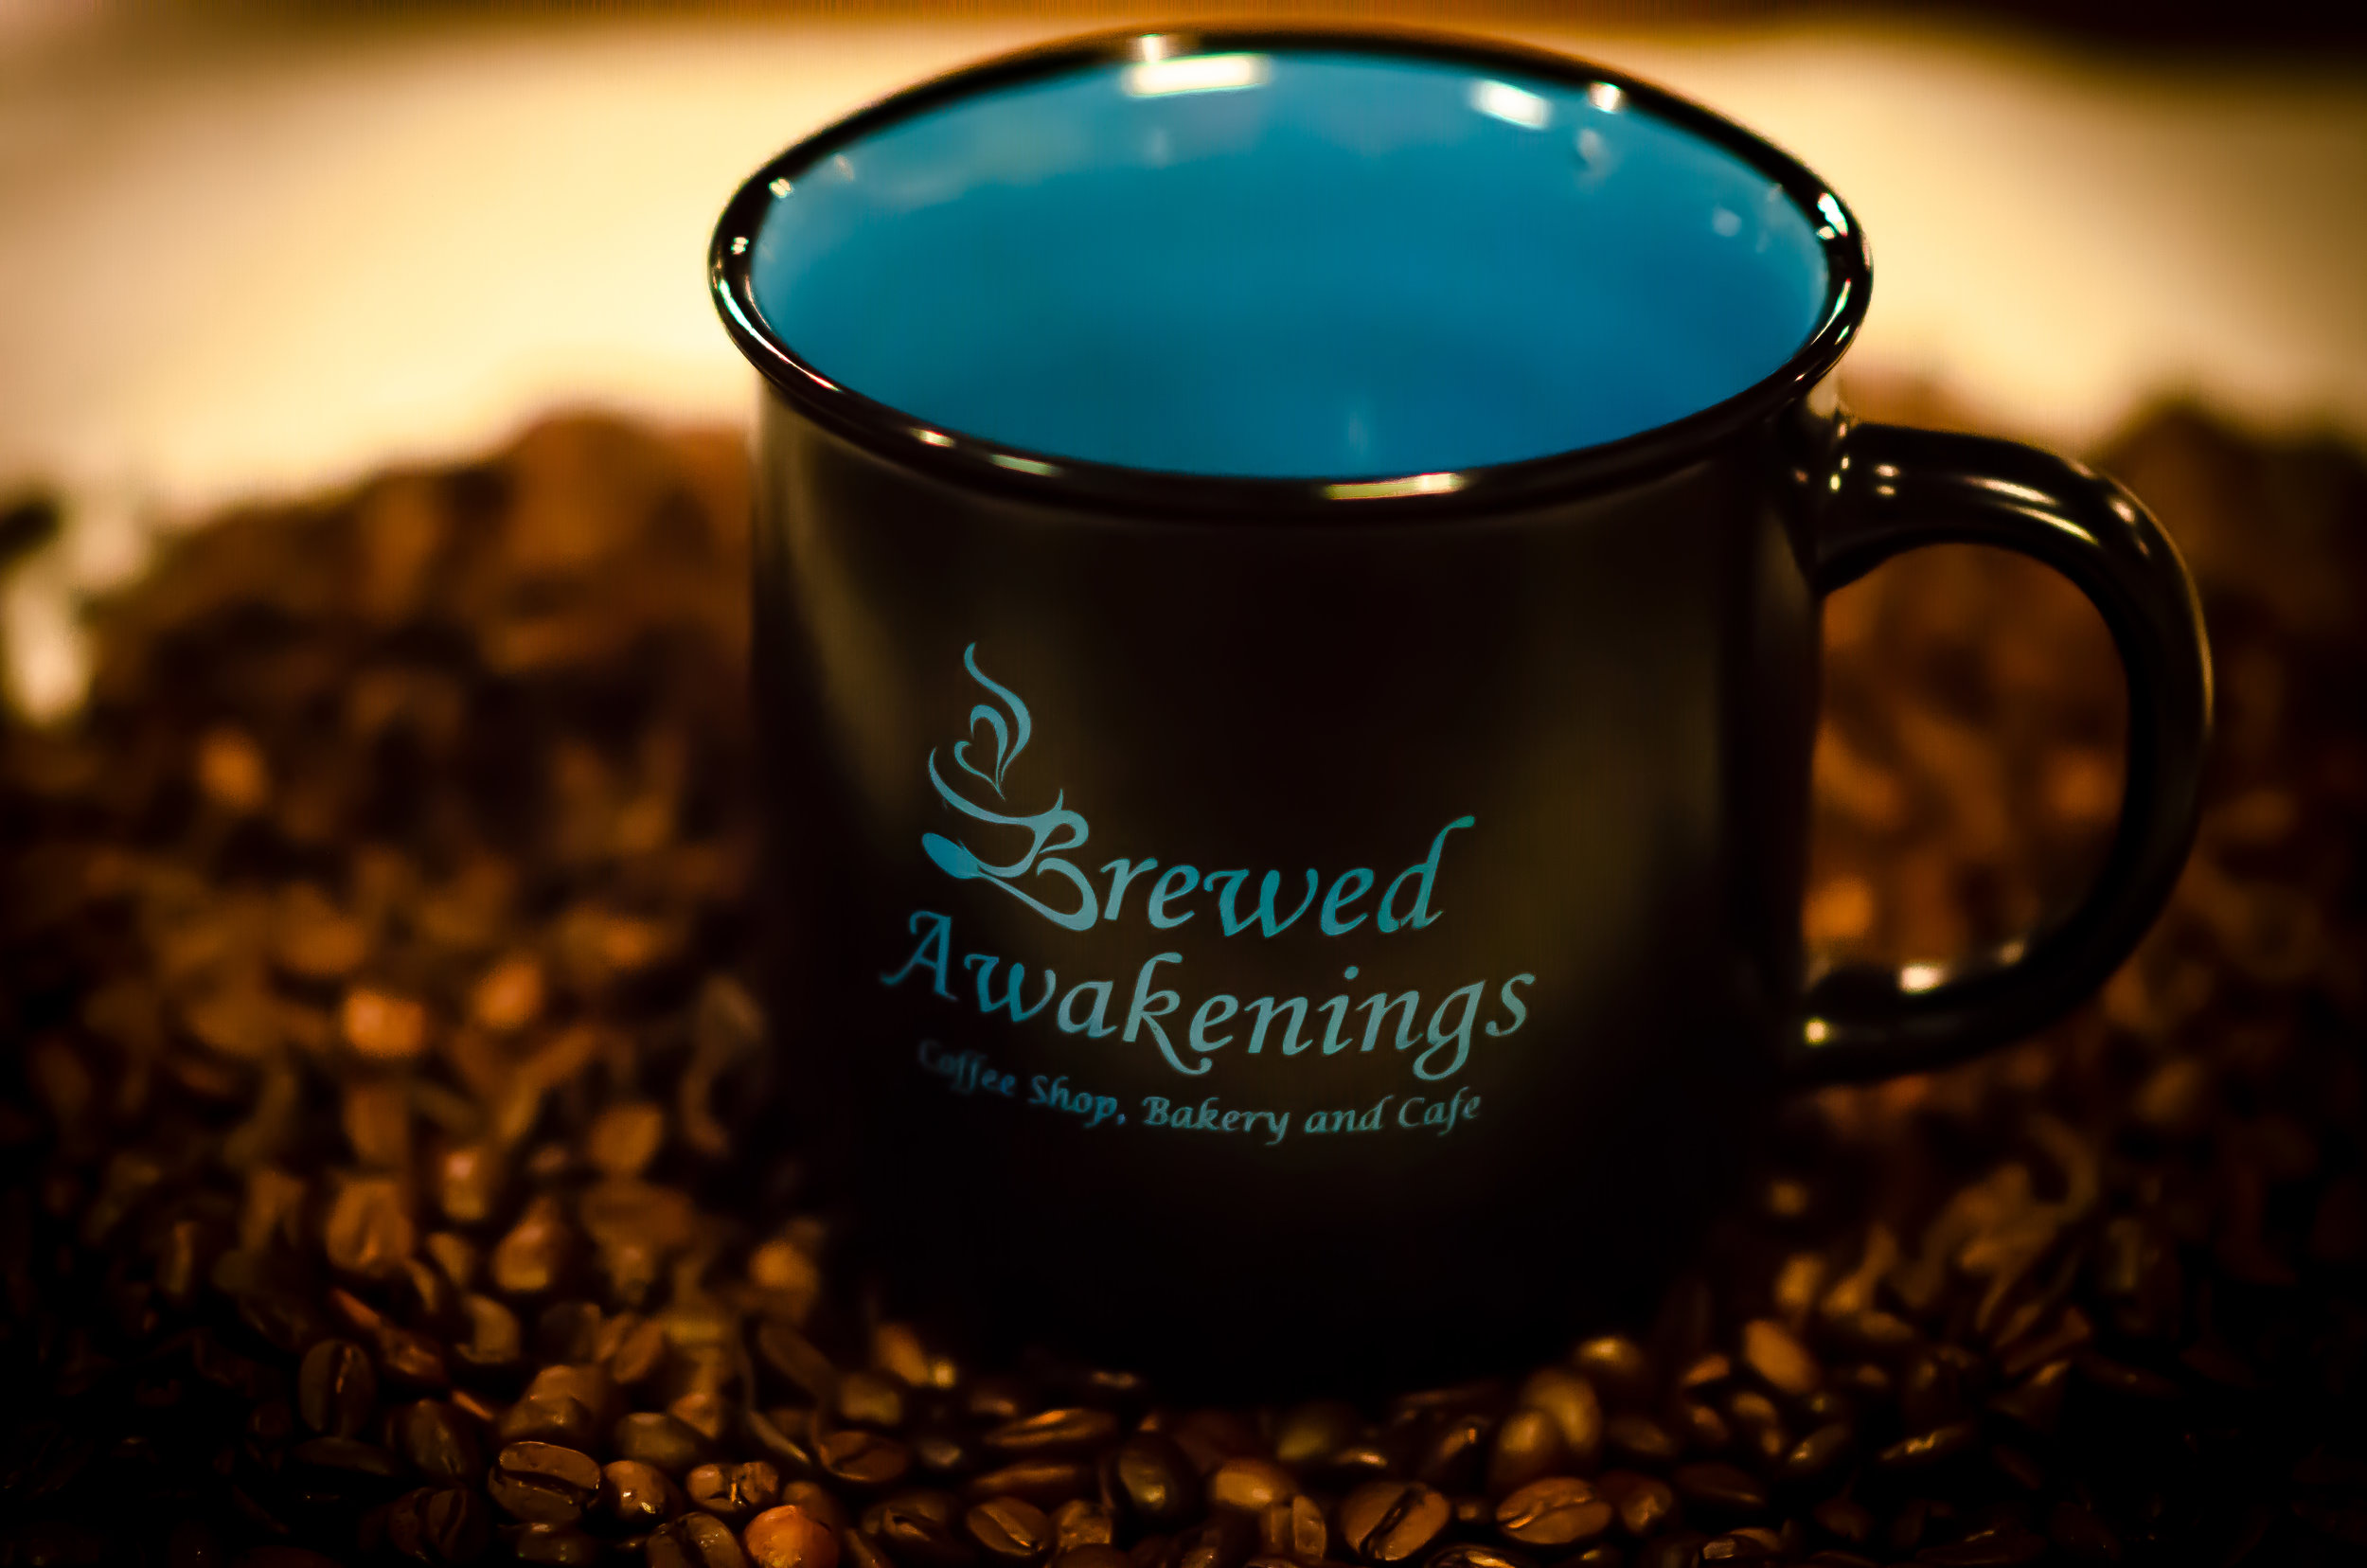 About - Discover what fuels our passion; meet Brewed Awakenings' owner, Kim Kaster & the staff that delivers smiling service!